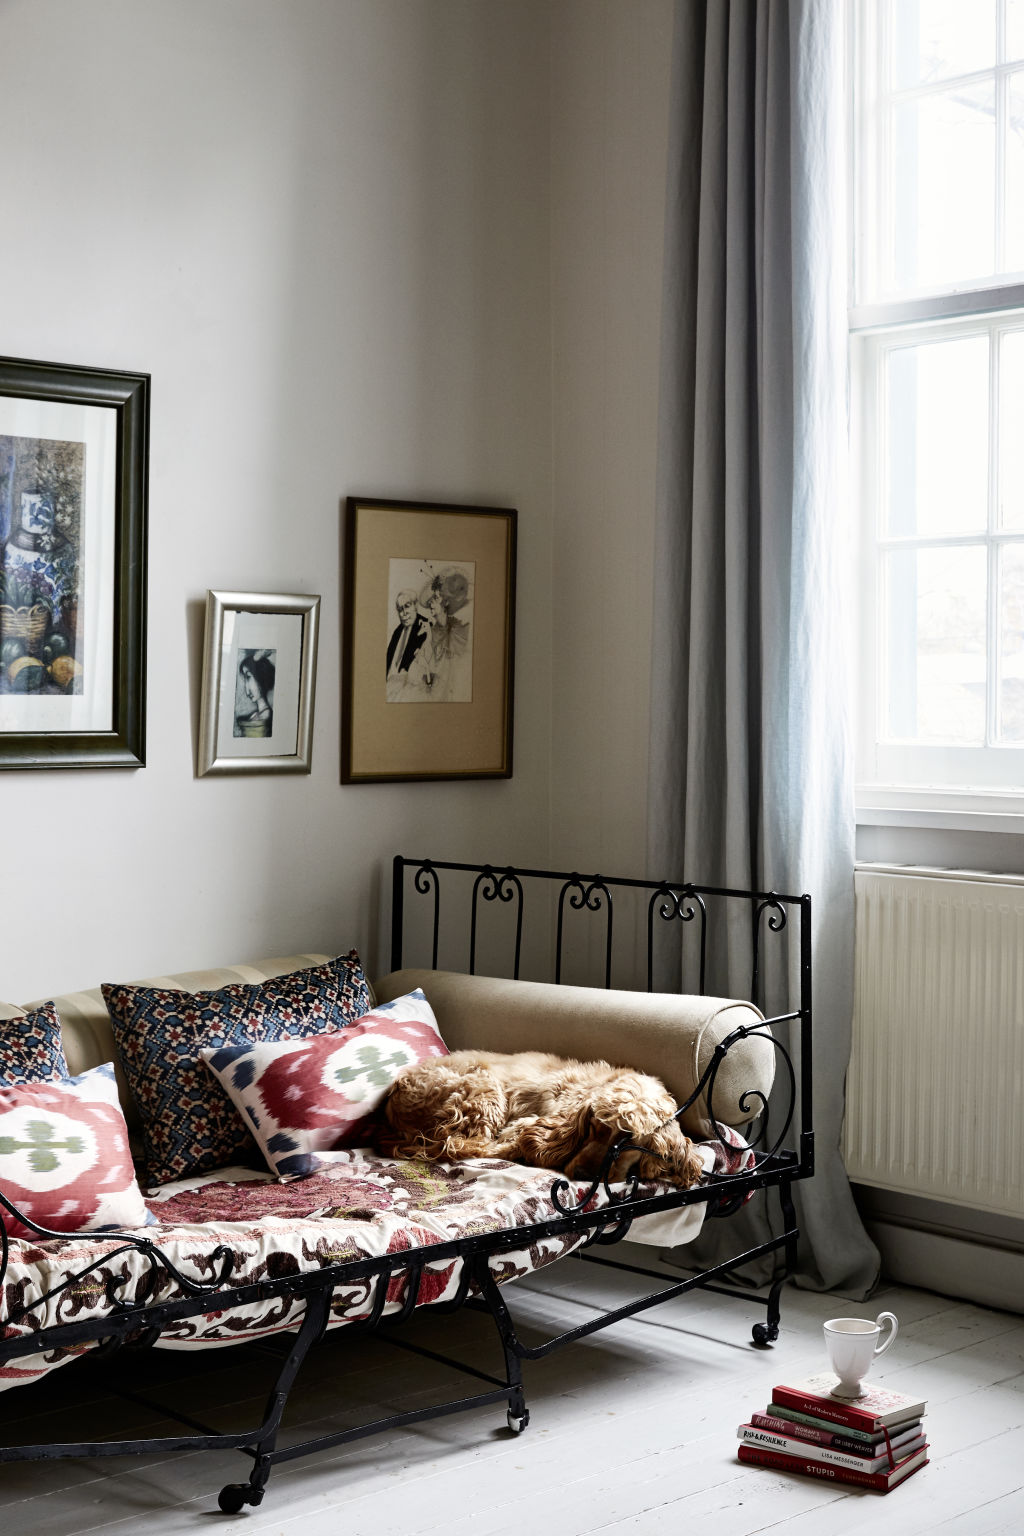 Early French folding bed purchase in L'Isle-sur-la-Sorgue, Tigger's favourite antique shopping spot in France. Almaty Velvet black cushions by Carolina Irving. Painting by Tigger and Sue McCartney Space, 'I love her wicked sense of humour'. Styling: Annie Portelli.